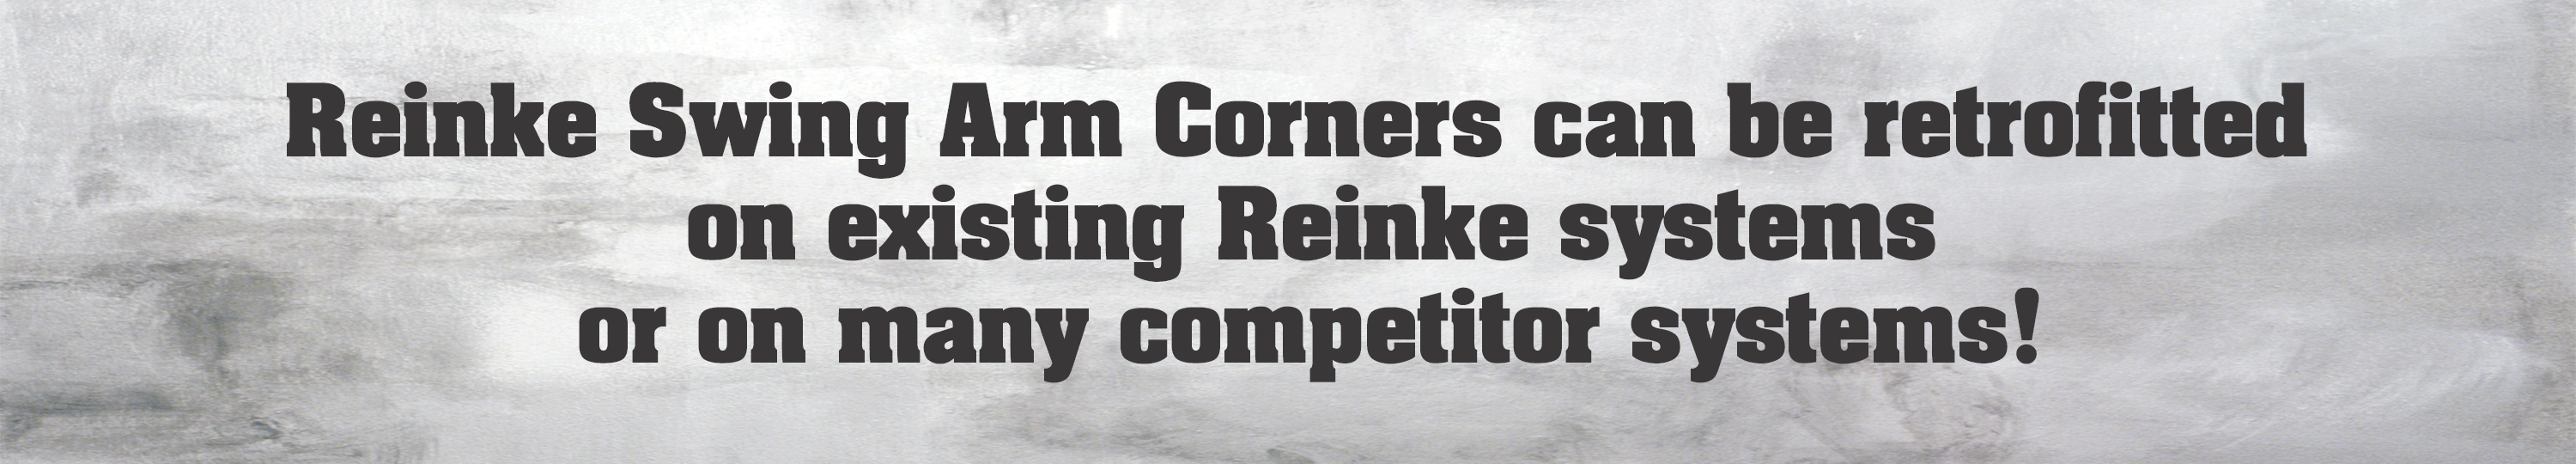 Reinke Swing Arm Corners can be retrofitted on existing Reinke systems or on many competitor systems